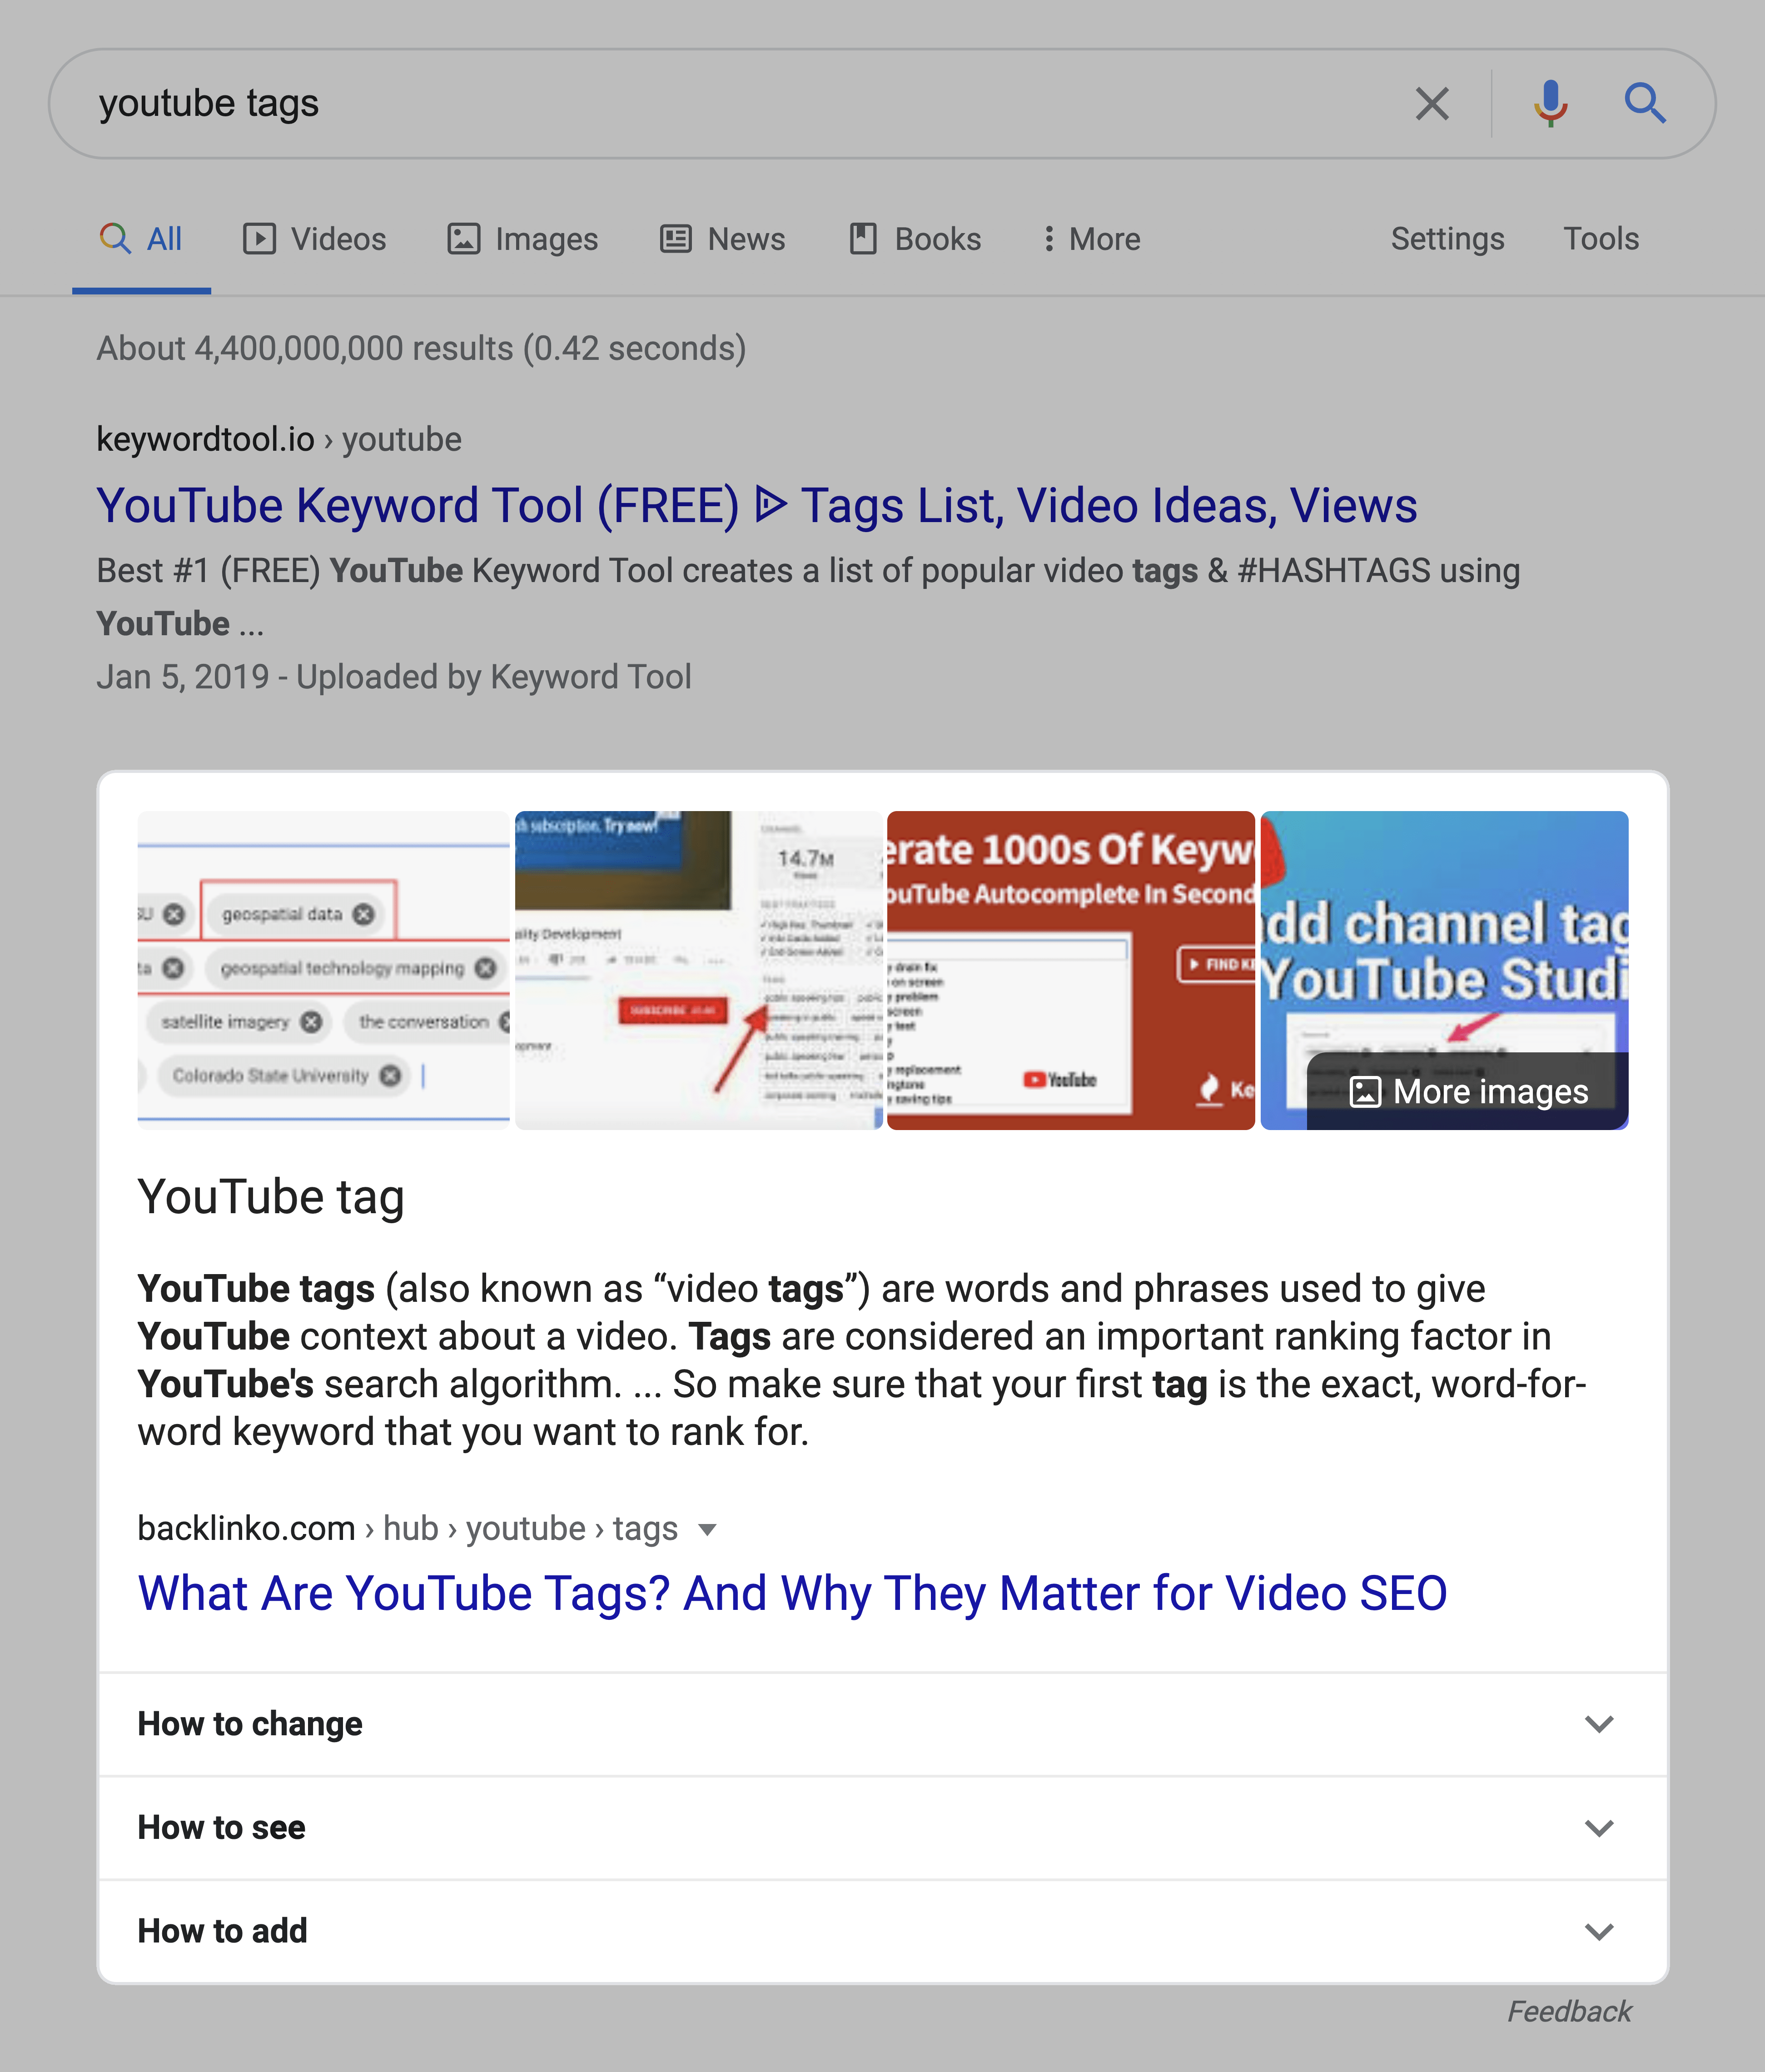 Featured Snippet Within Search Results